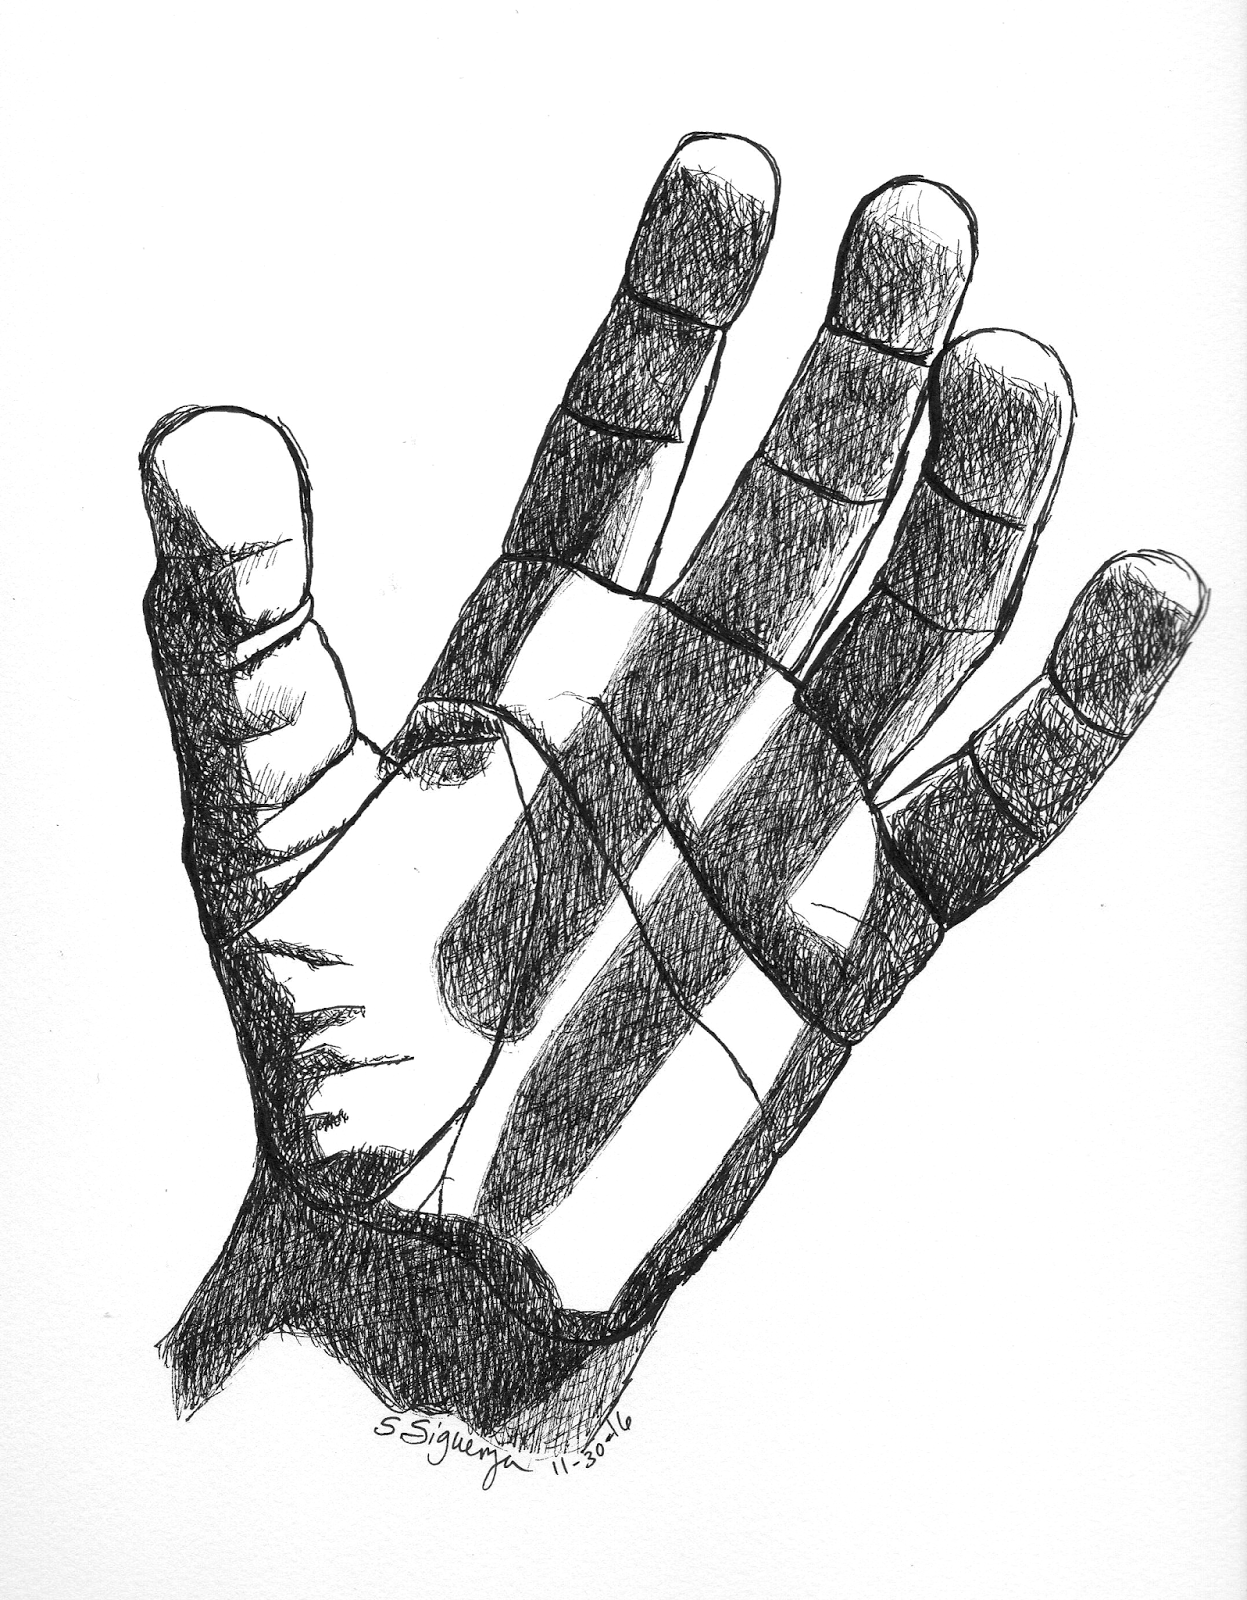 Drawn pen hand drawing With shadows drawing finger drawing